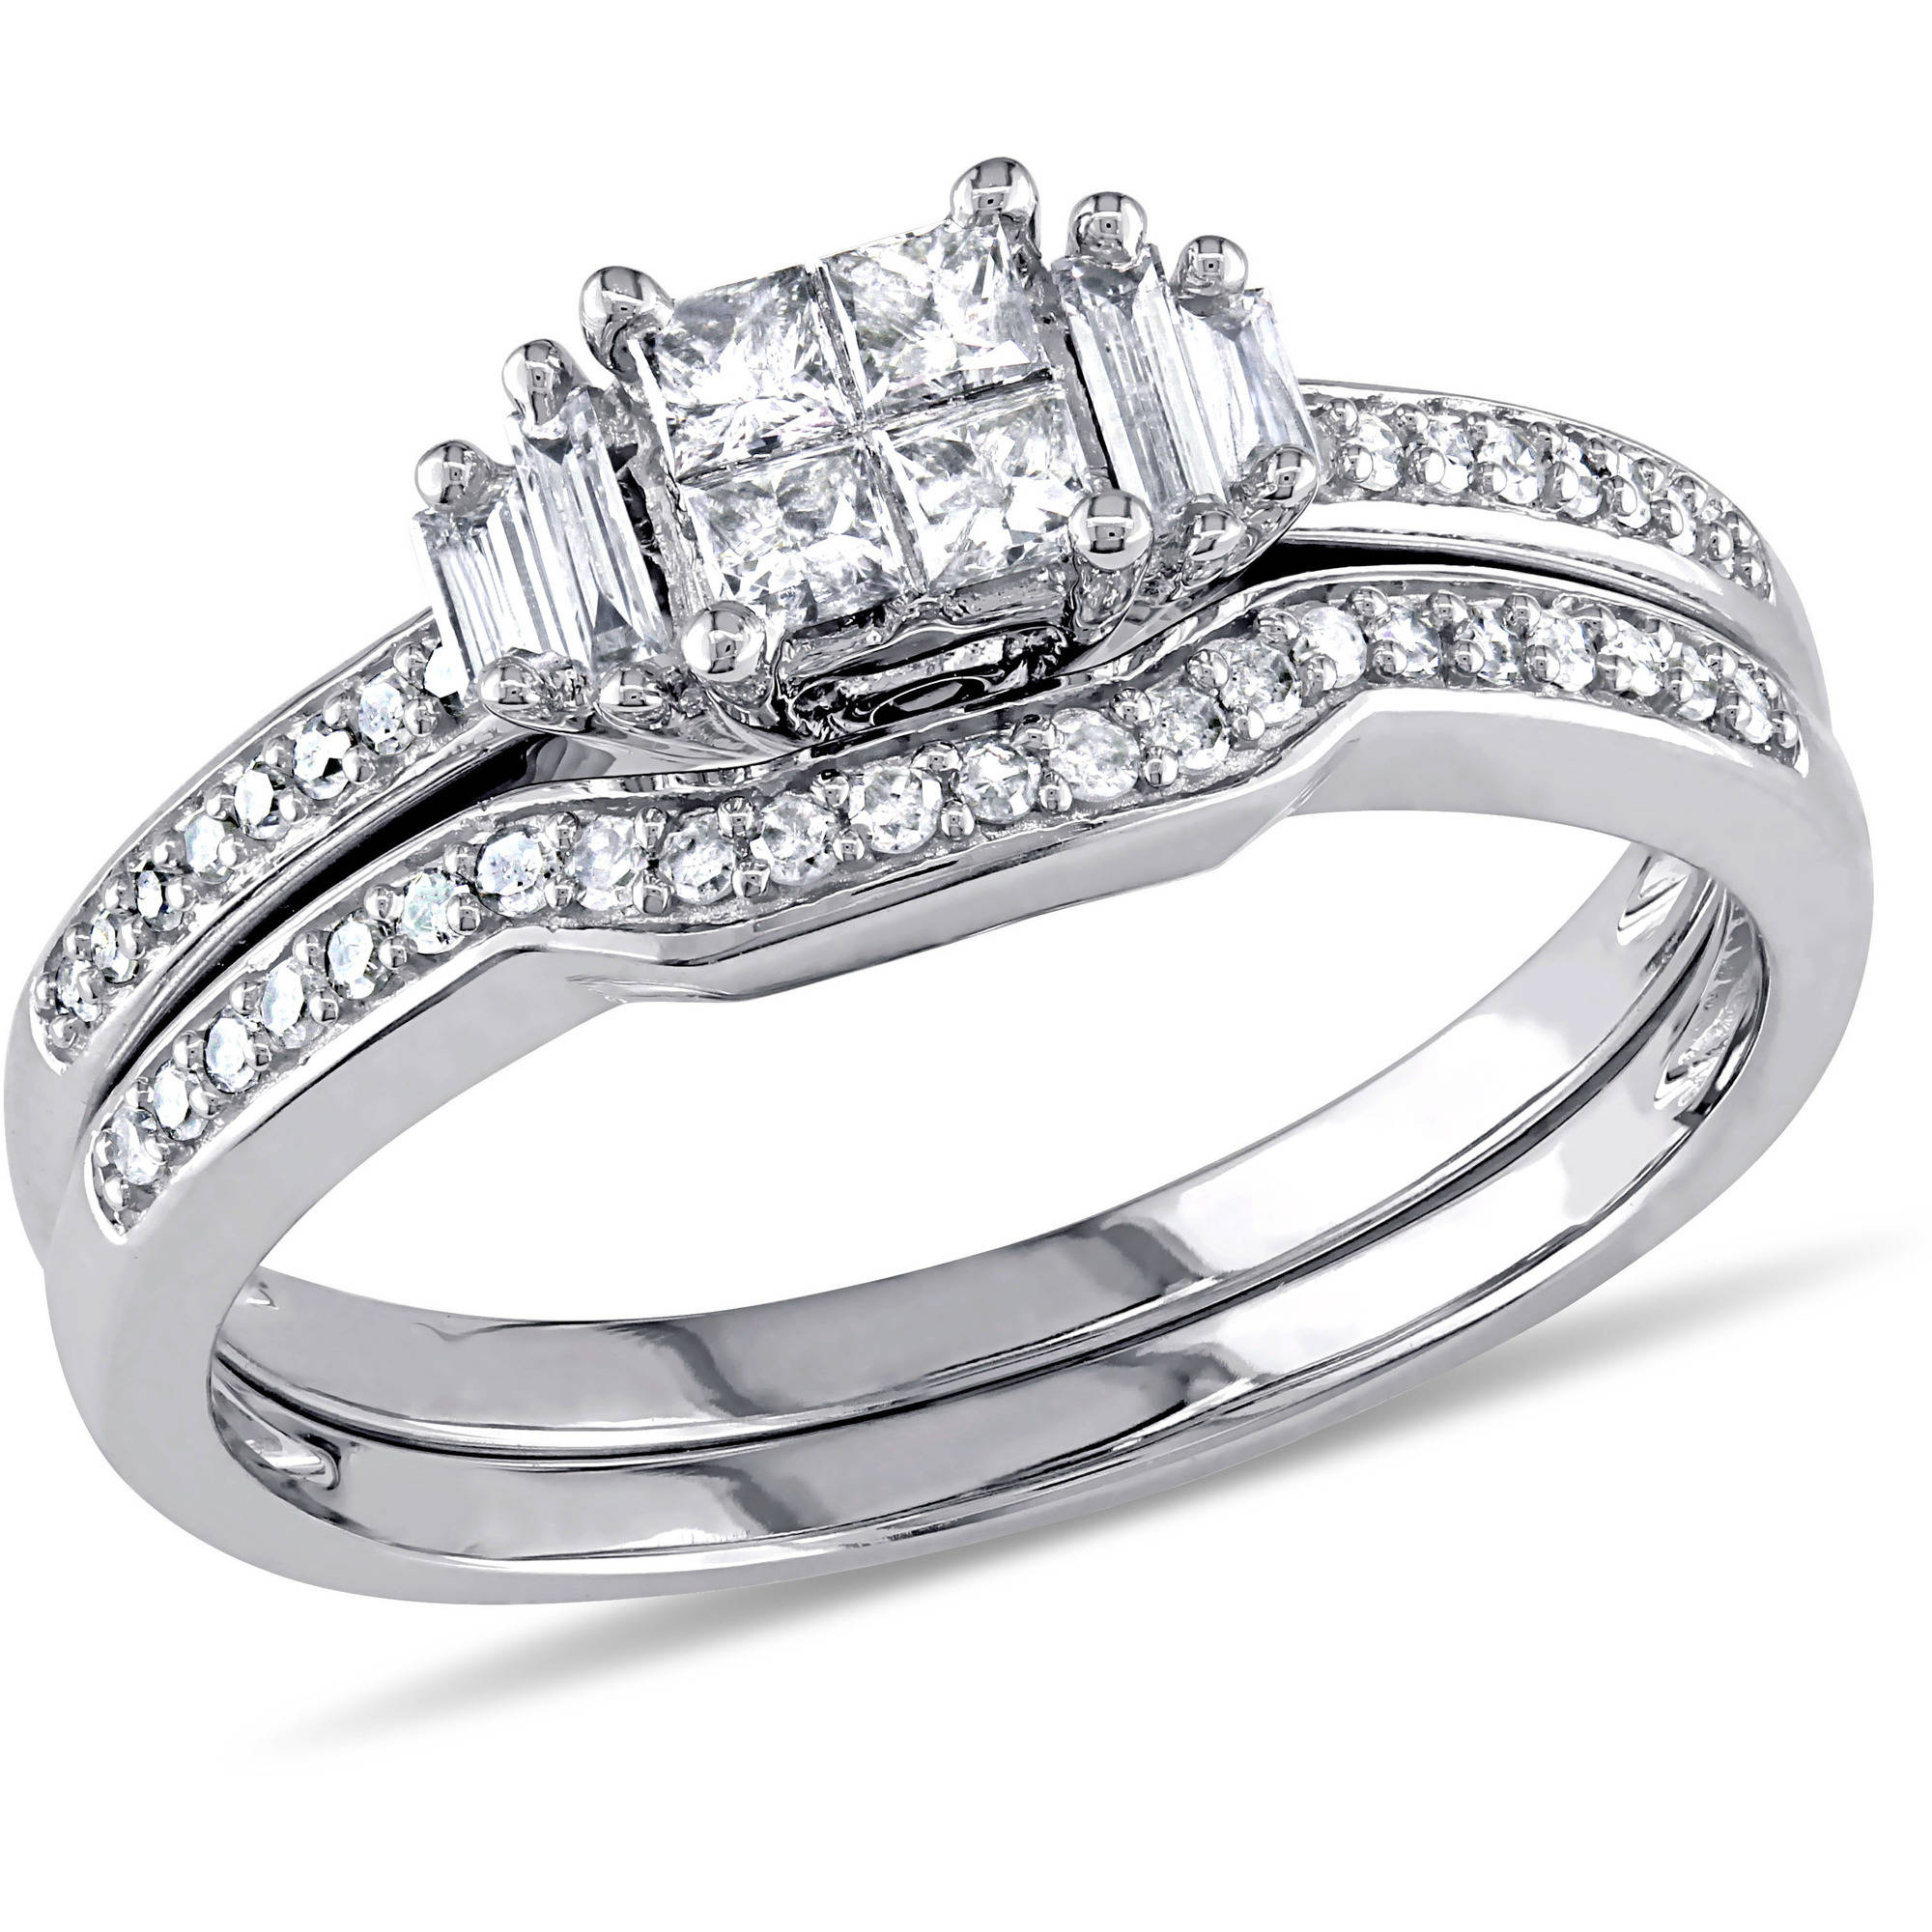 Miabella 1 2 Carat T.W. Diamond Princess, Baguette and Round-Cut Bridal Set in 10kt White Gold by Delmar Manufacturing LLC